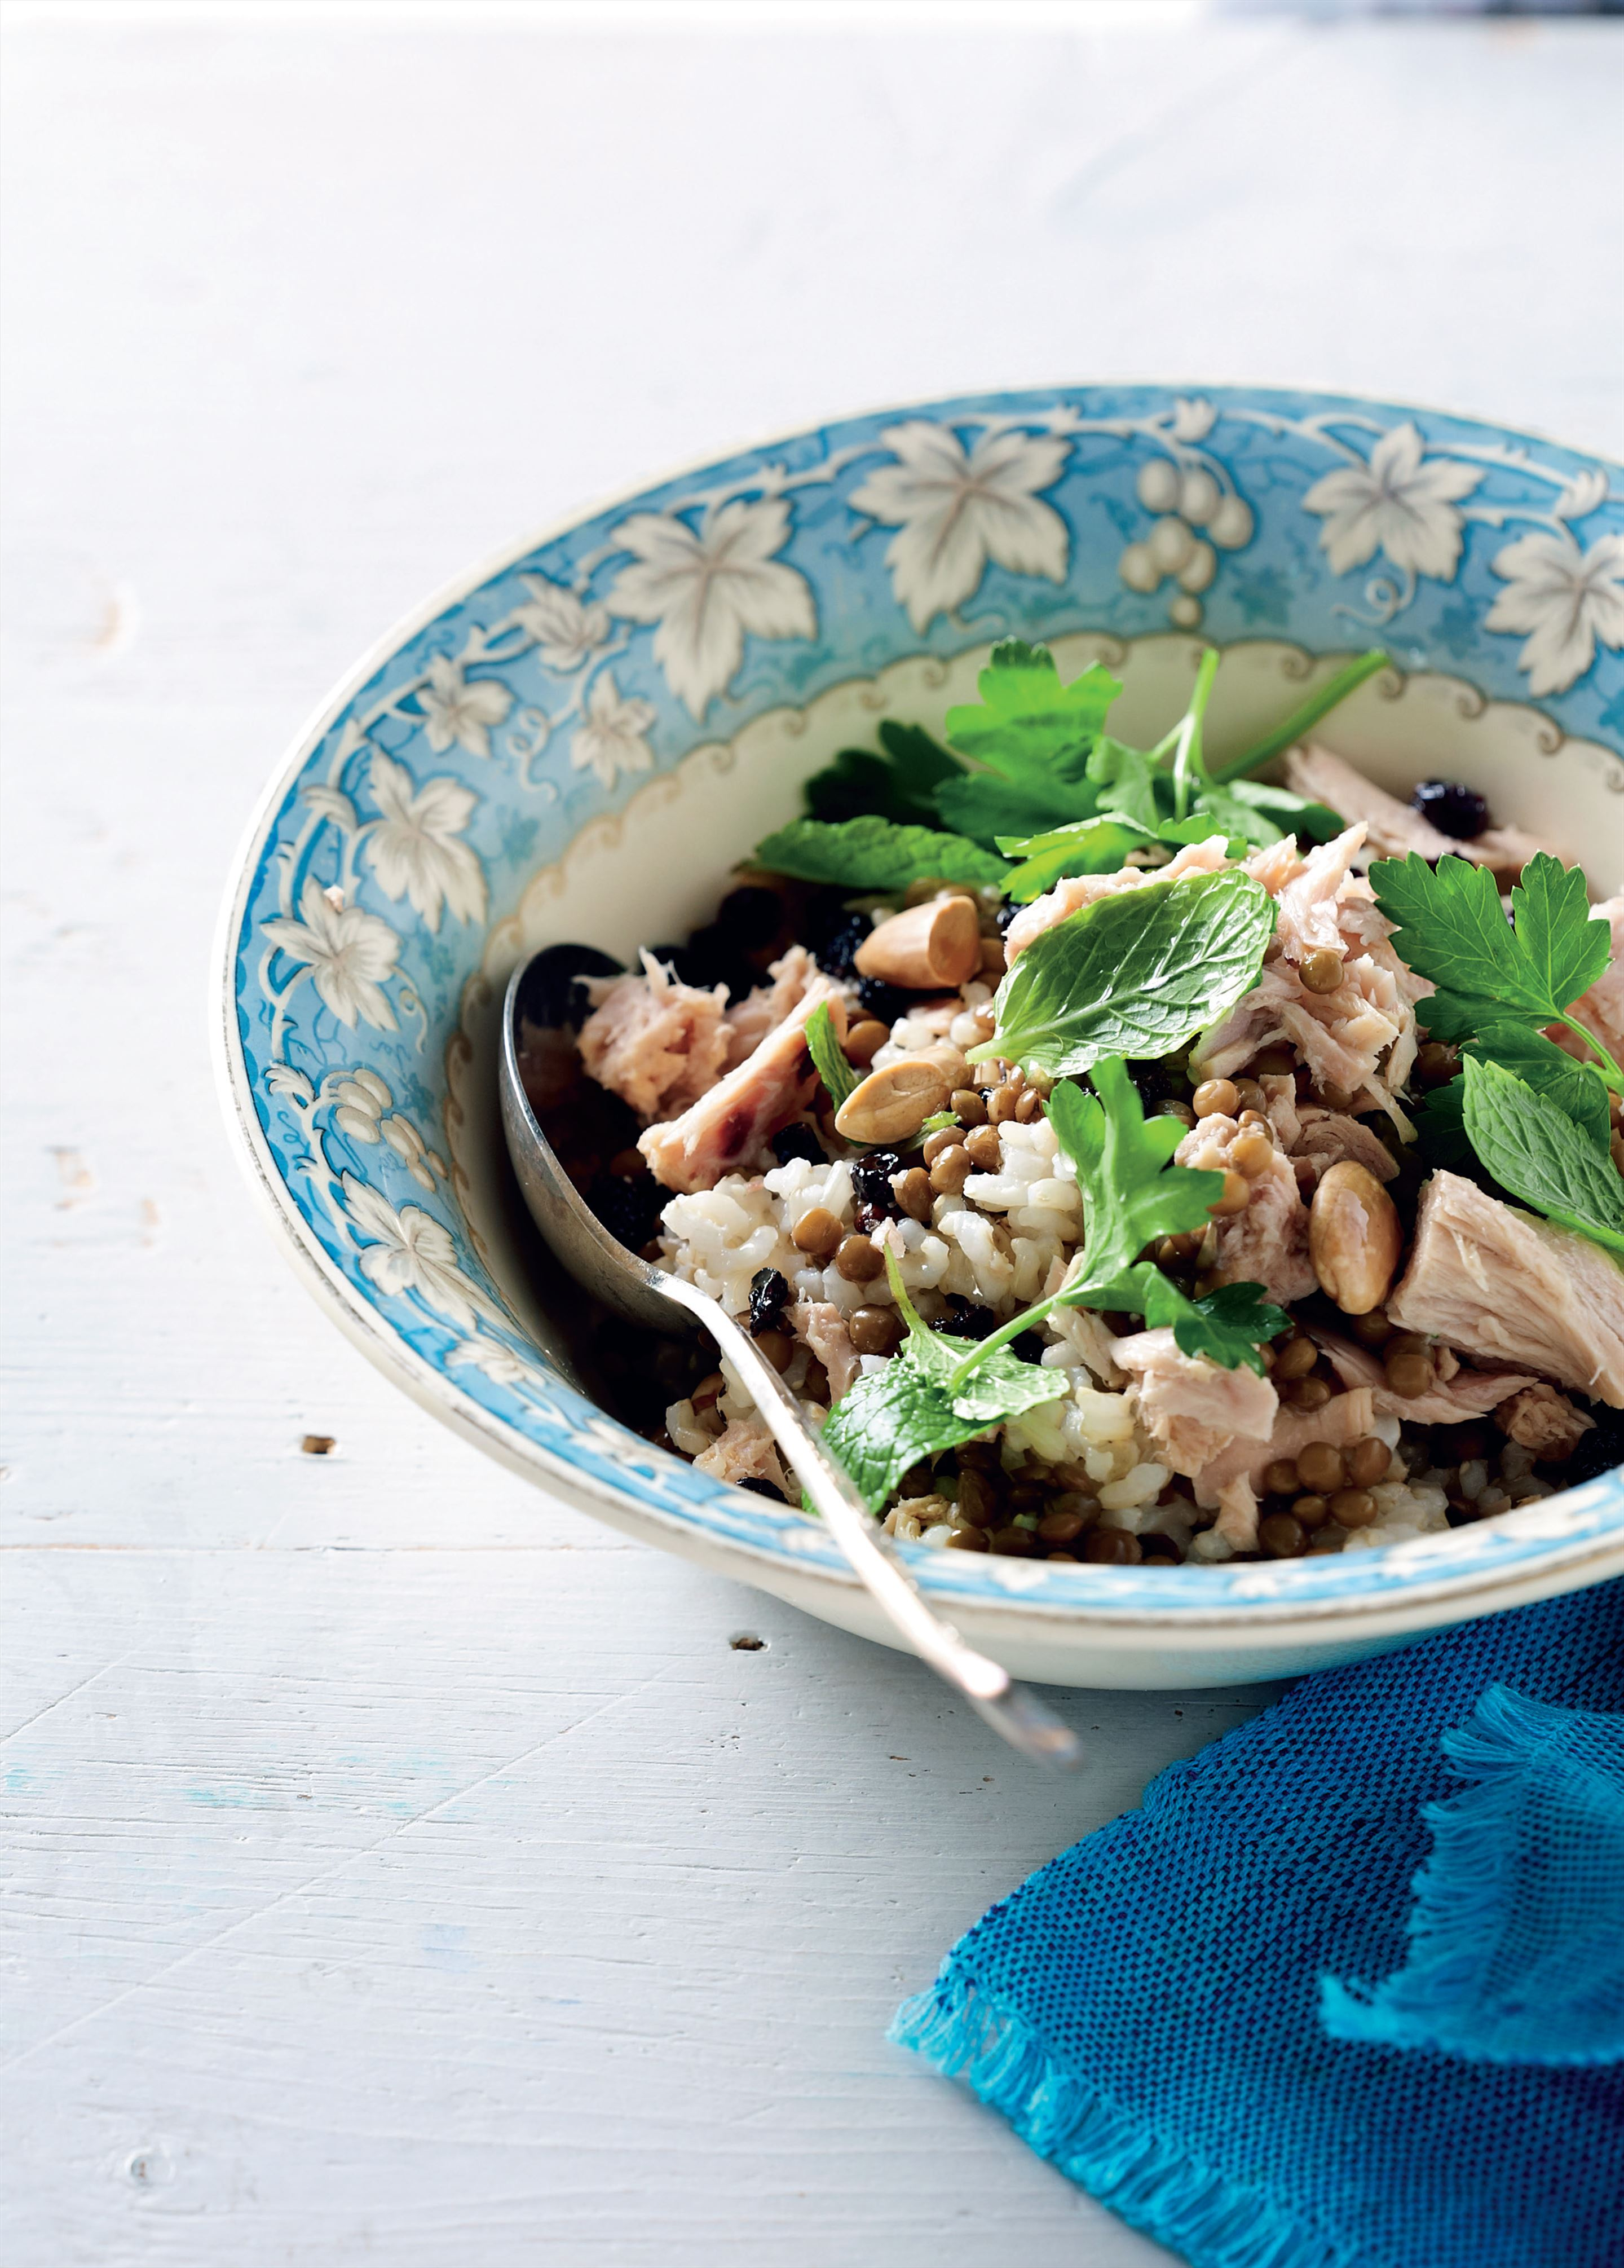 Herbed tuna and lentil rice salad